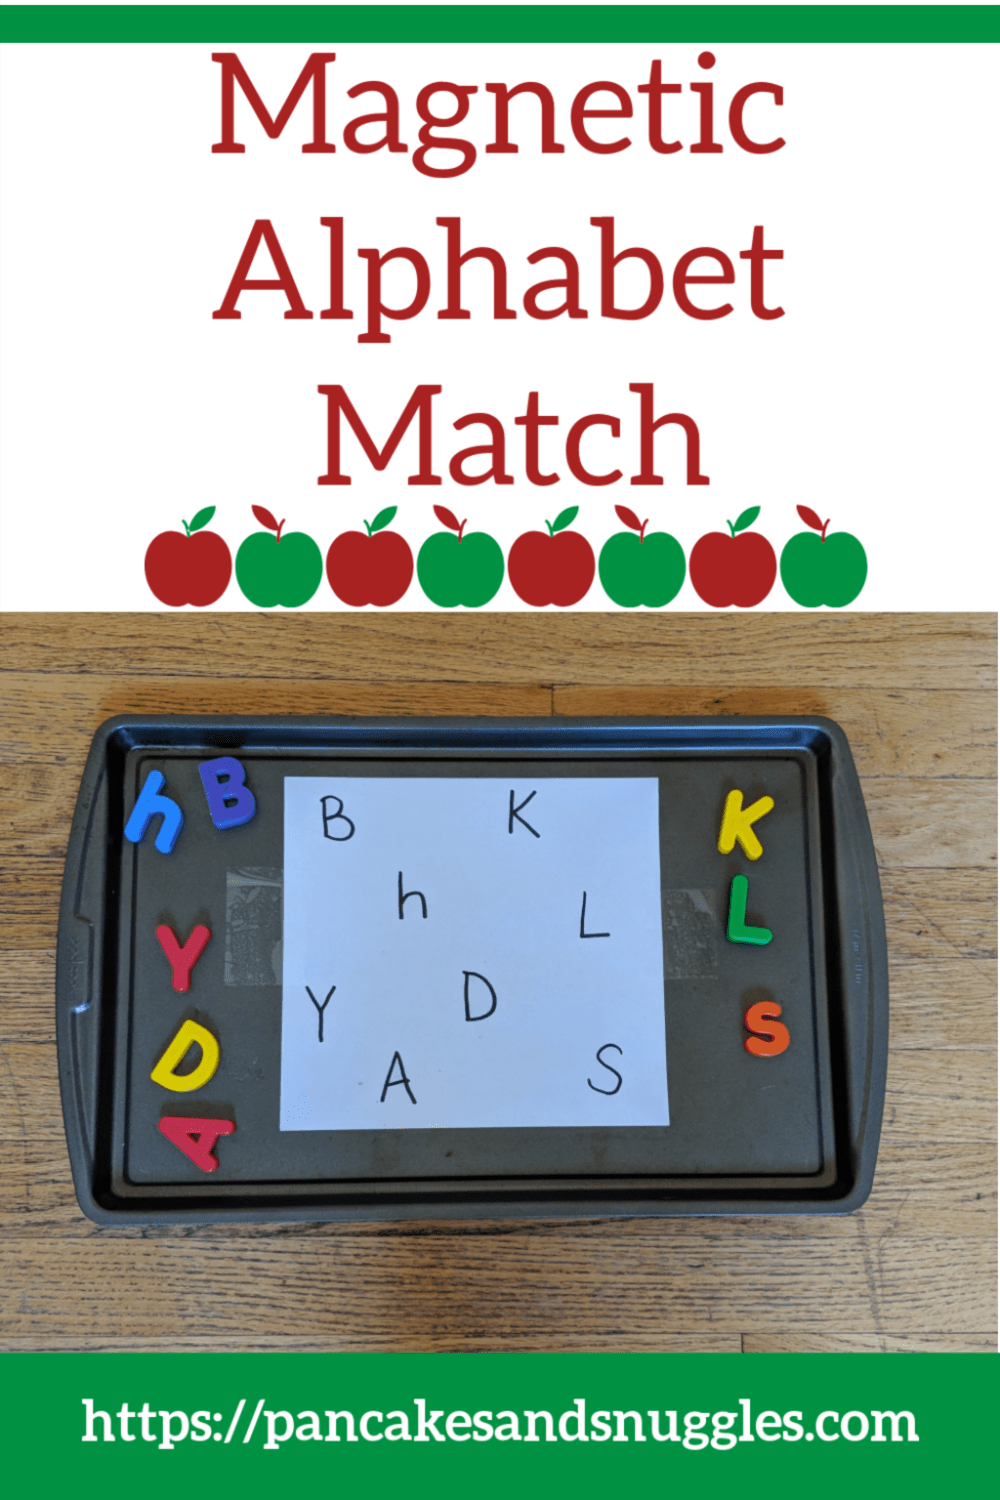 Magnetic Alphabet Match